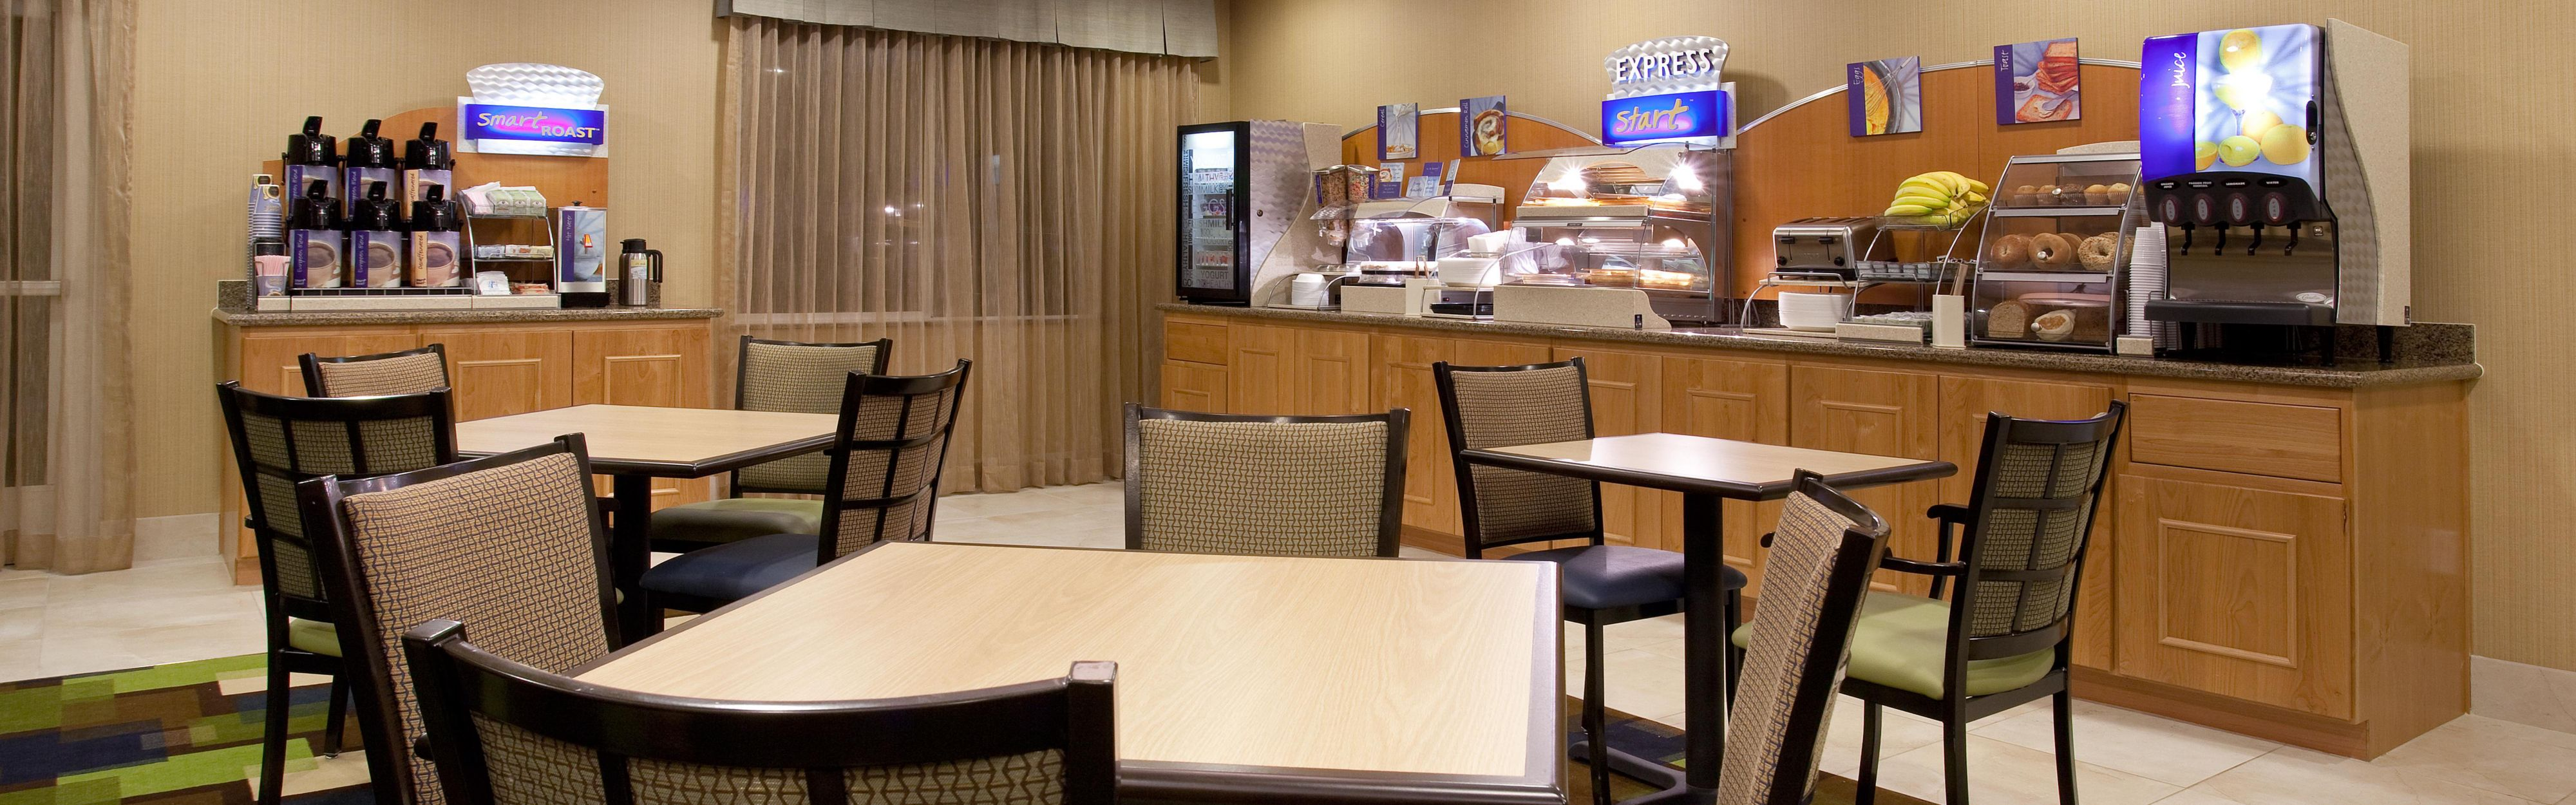 Holiday Inn Express & Suites American Fork- North Provo image 2